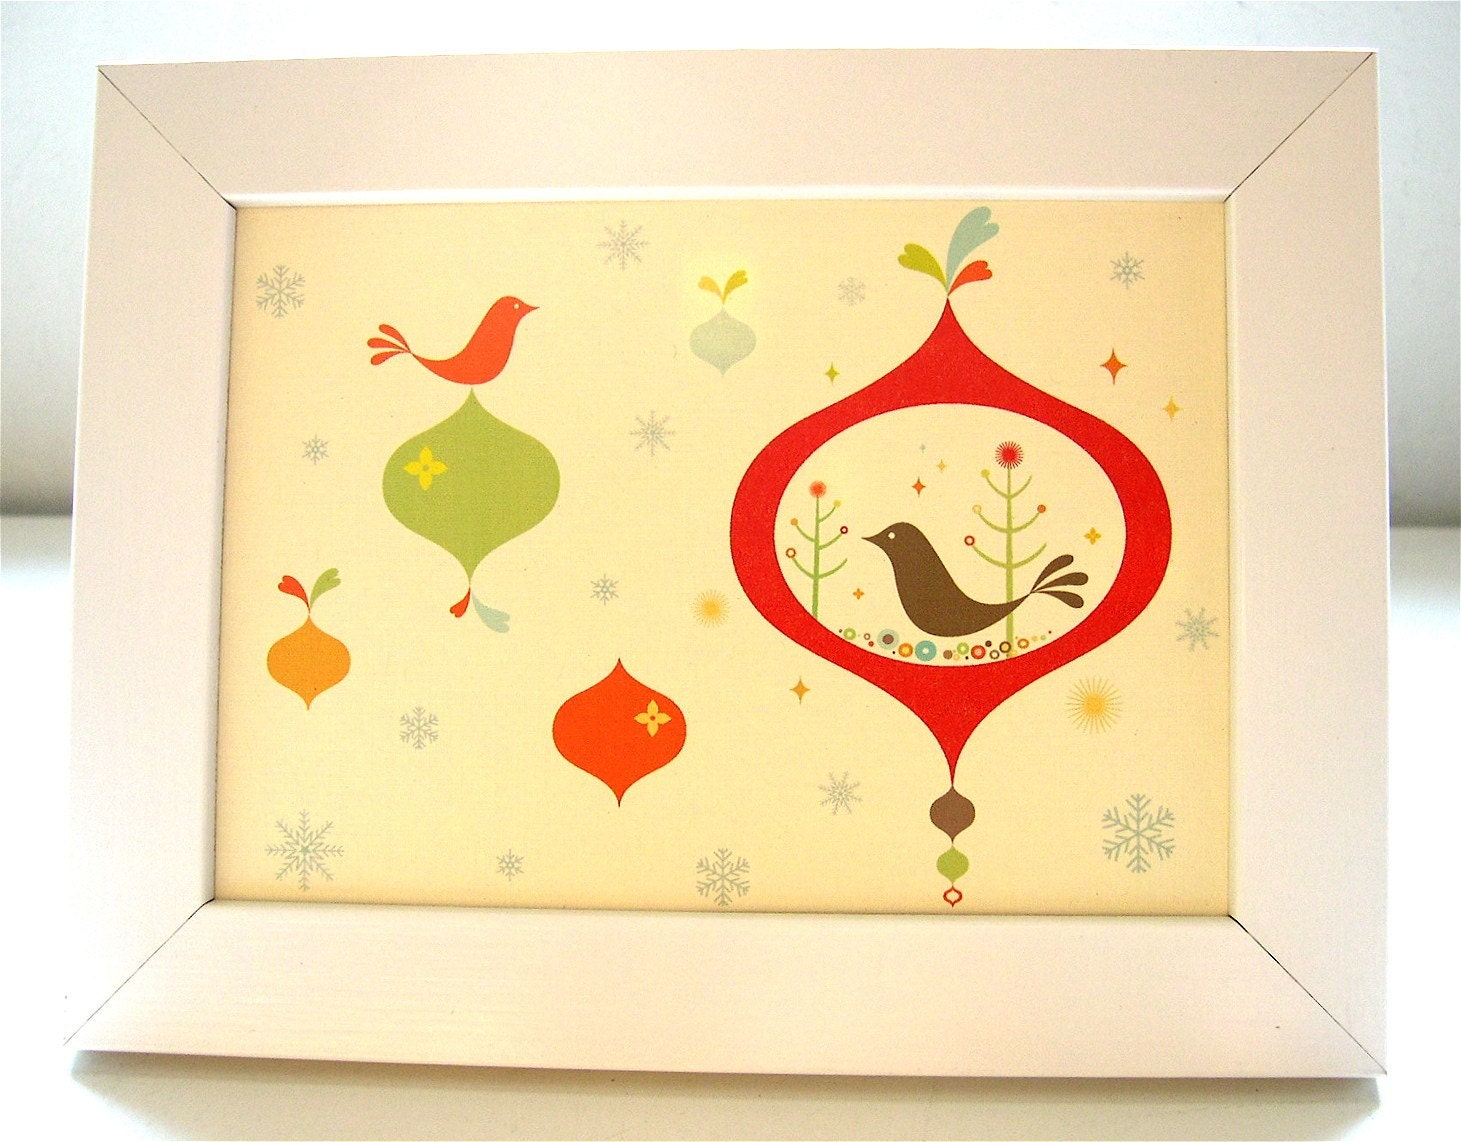 Framed Birdie Ornament Print